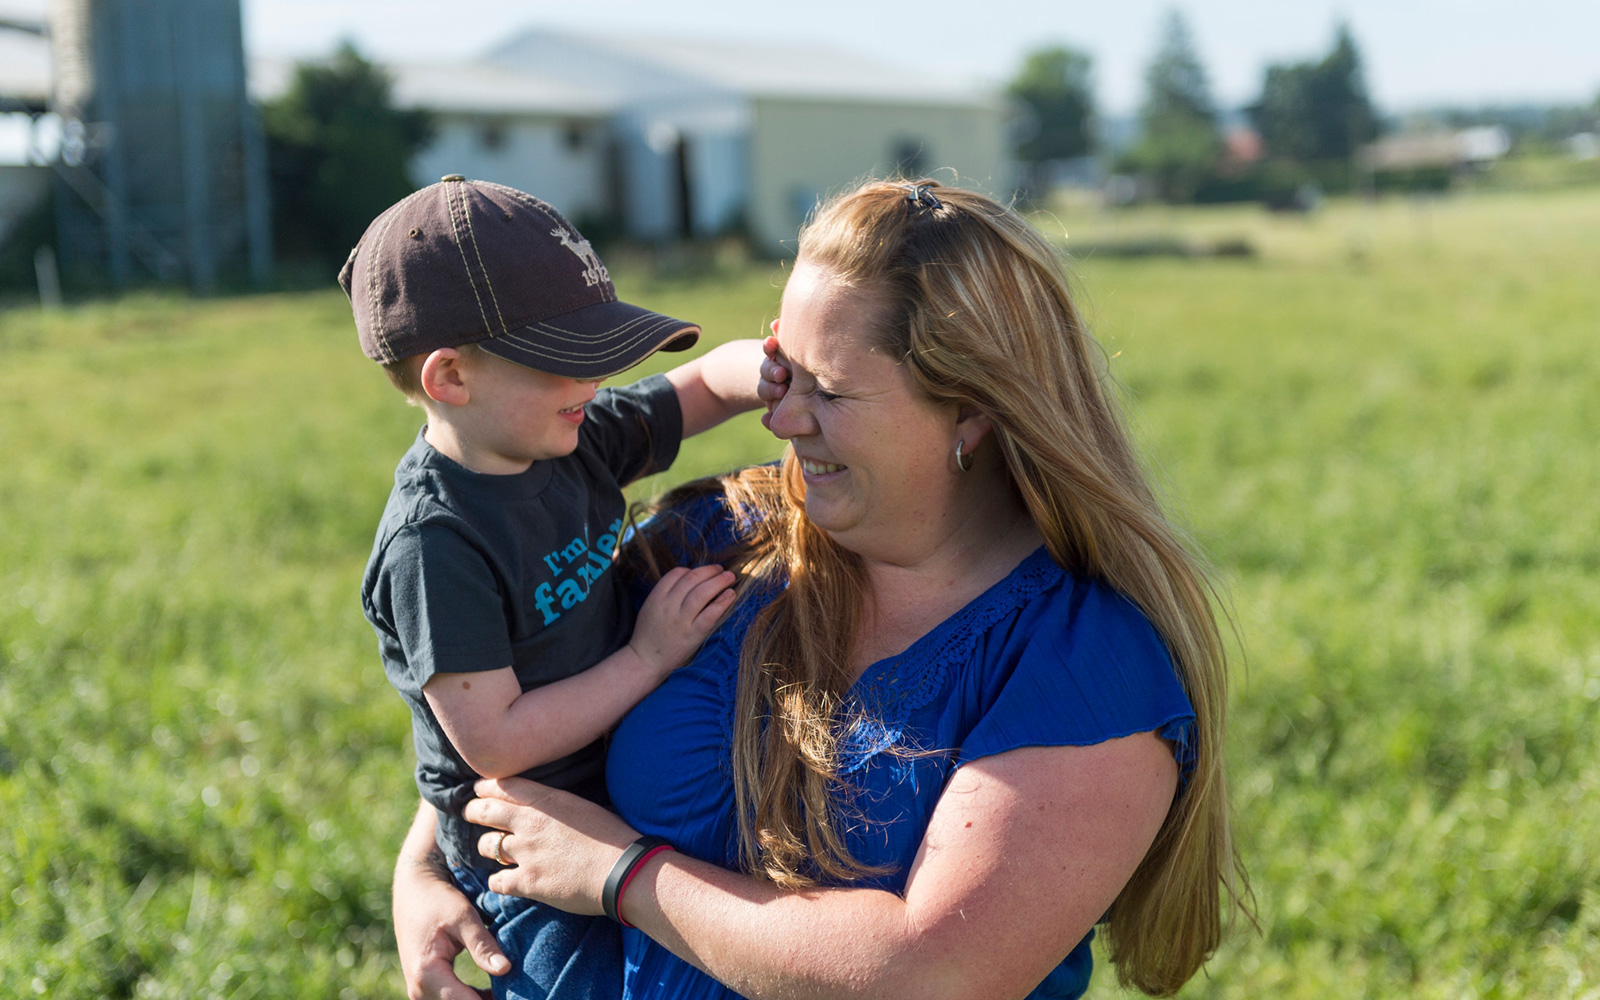 Melissa Collman laughs as her son covers one of her eyes with his hand.